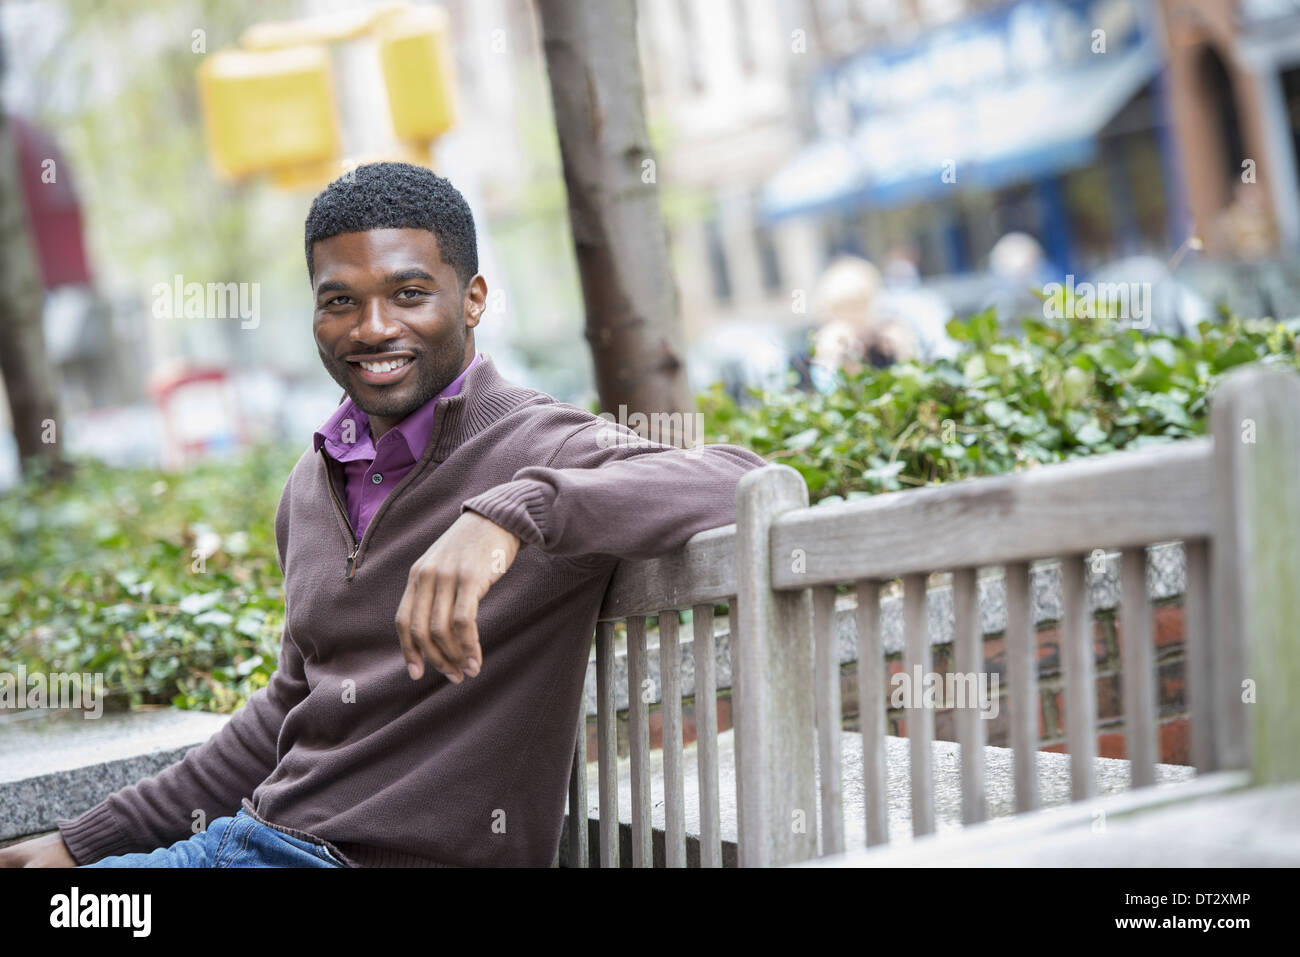 A young man seated on a bench - Stock Image